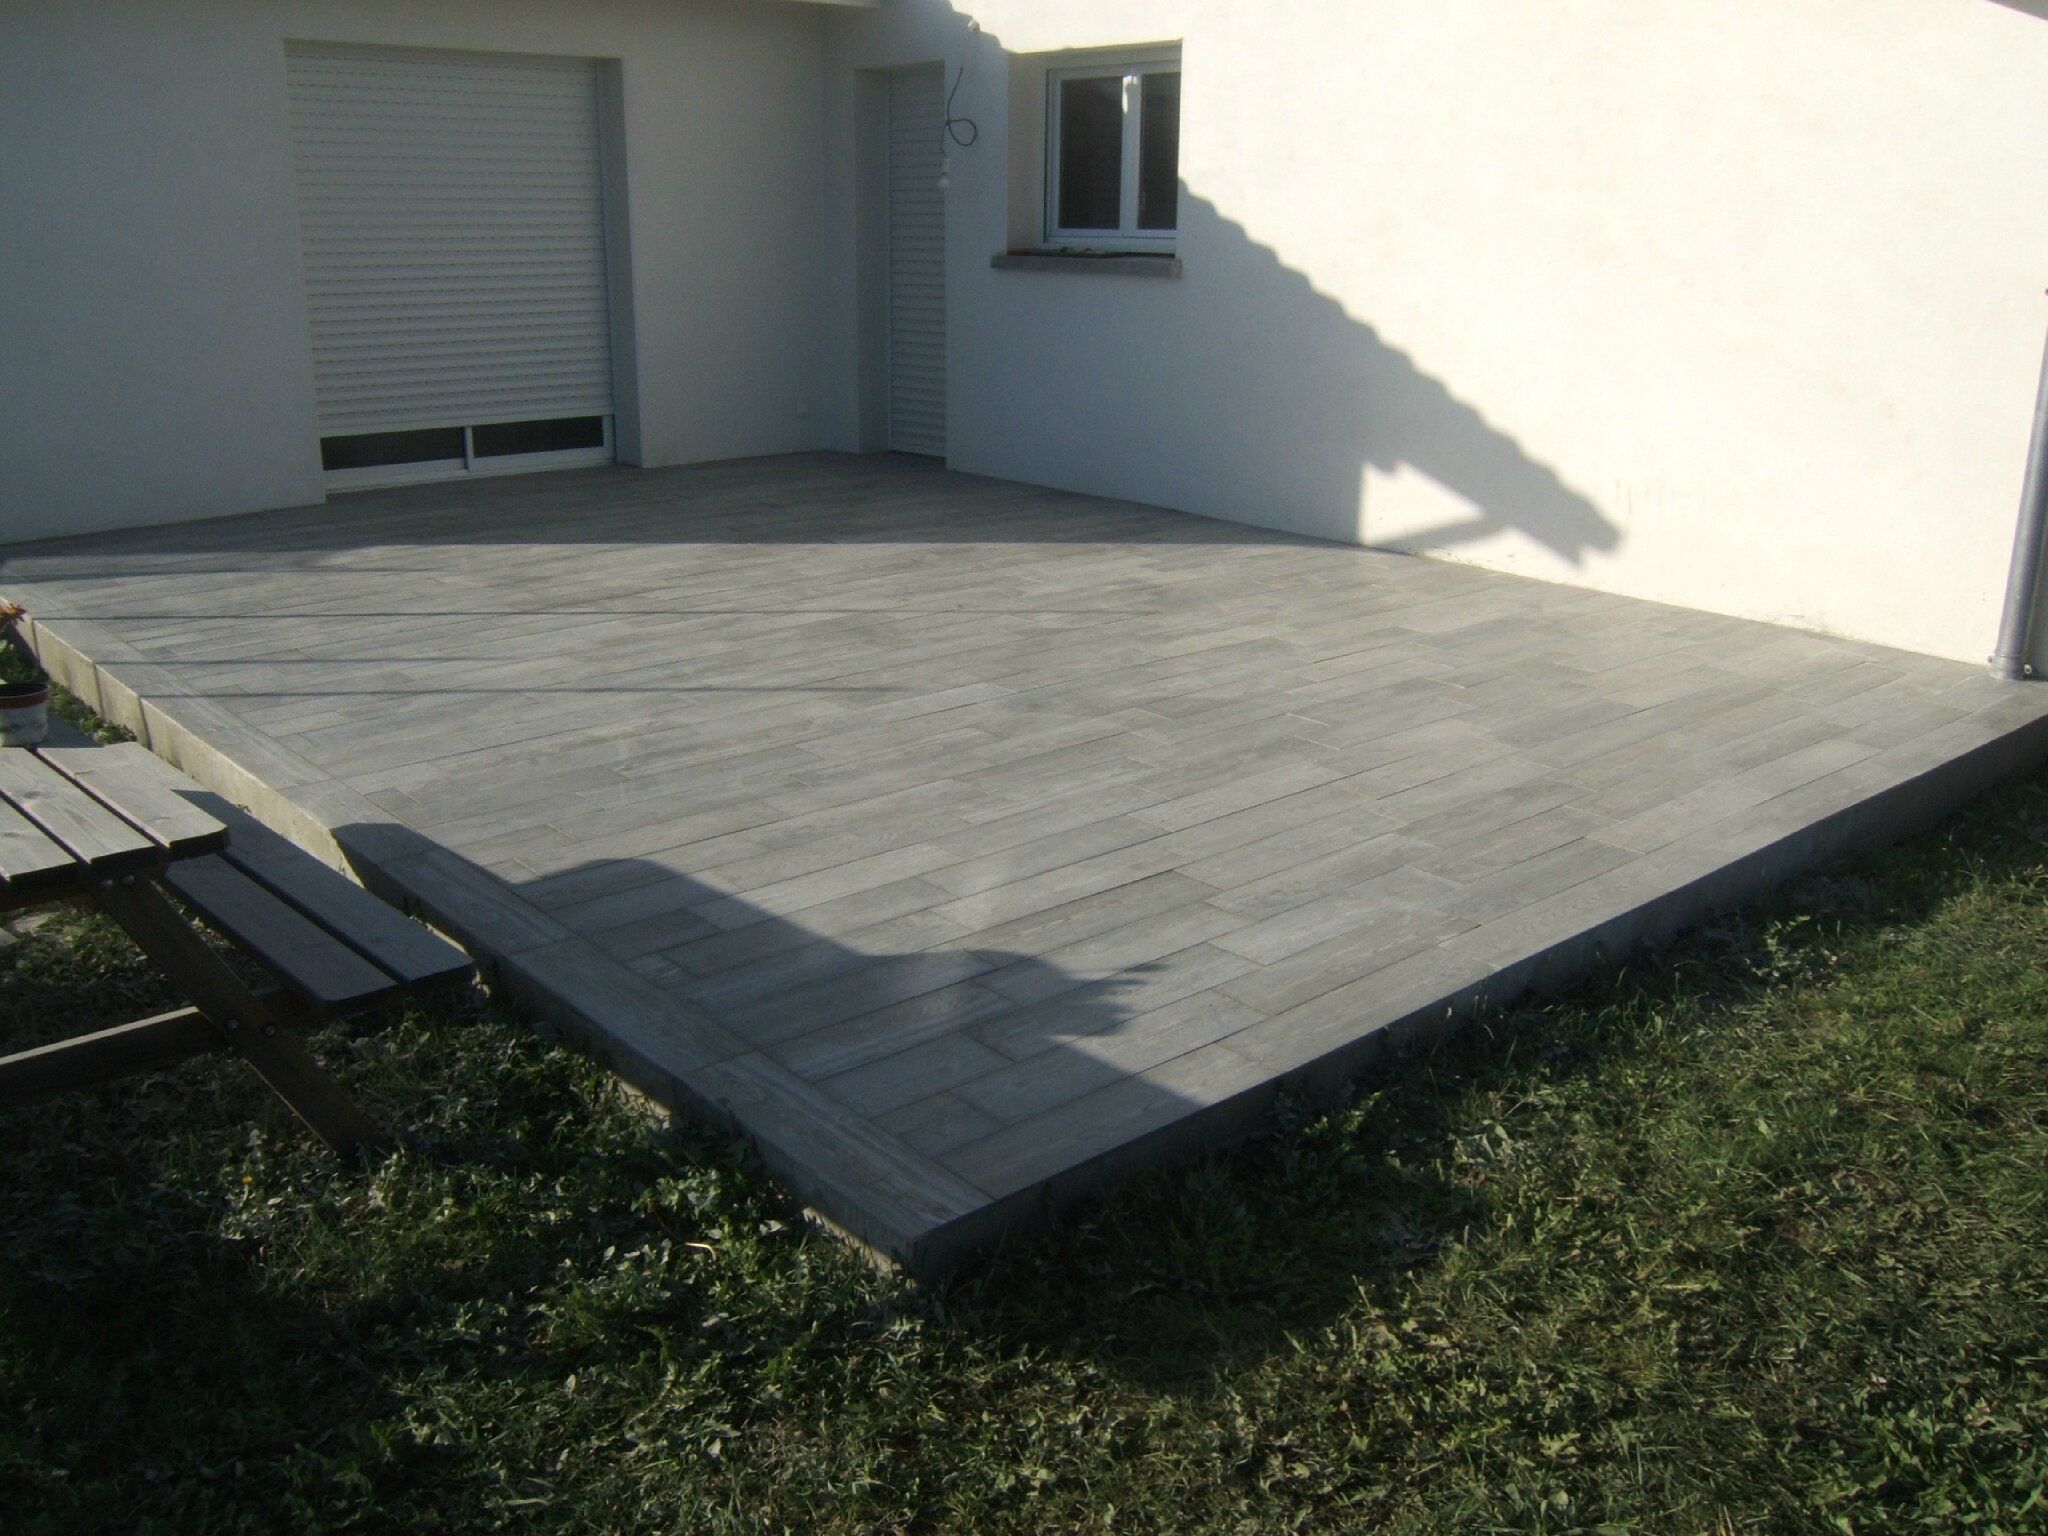 beautiful carrelage terrasse imitation plancher with comment poser carrelage exterieur - Comment Poser Du Carrelage Sur Une Terrasse